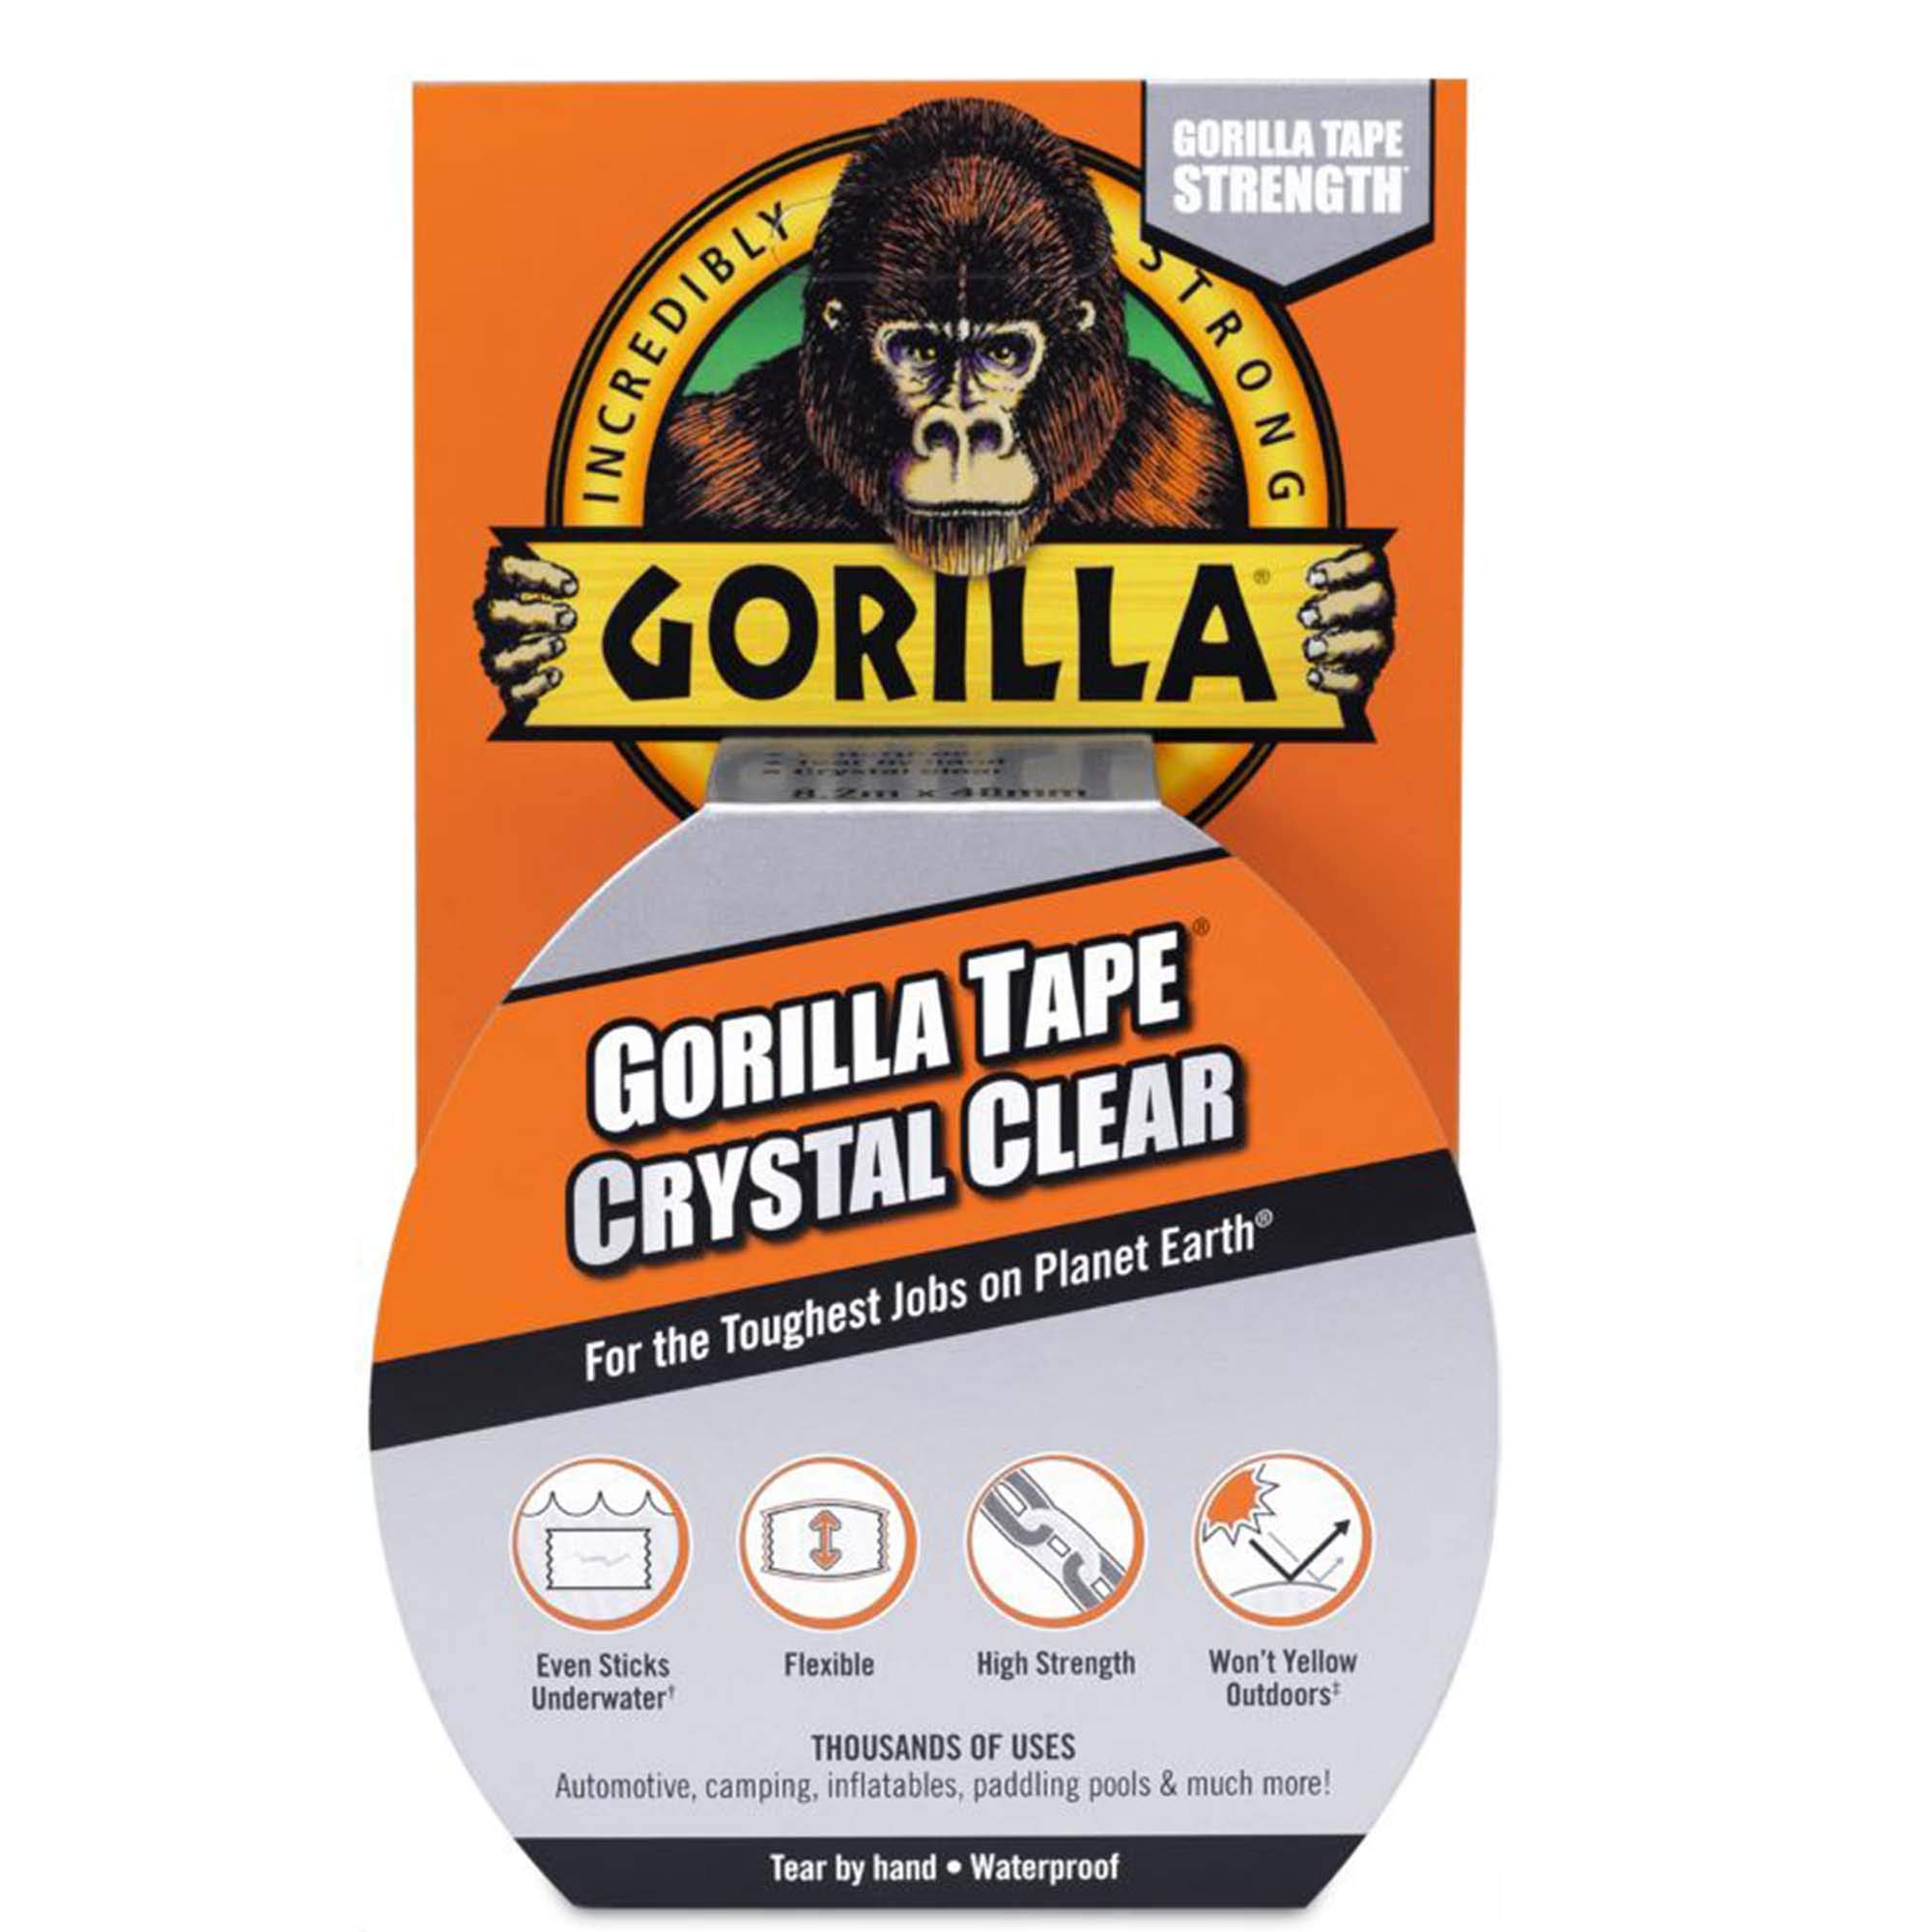 "Gorilla Crystal Clear Duct Tape, 1.88"" x 9 yd, Clear, (Pack of 1) - 6027002"